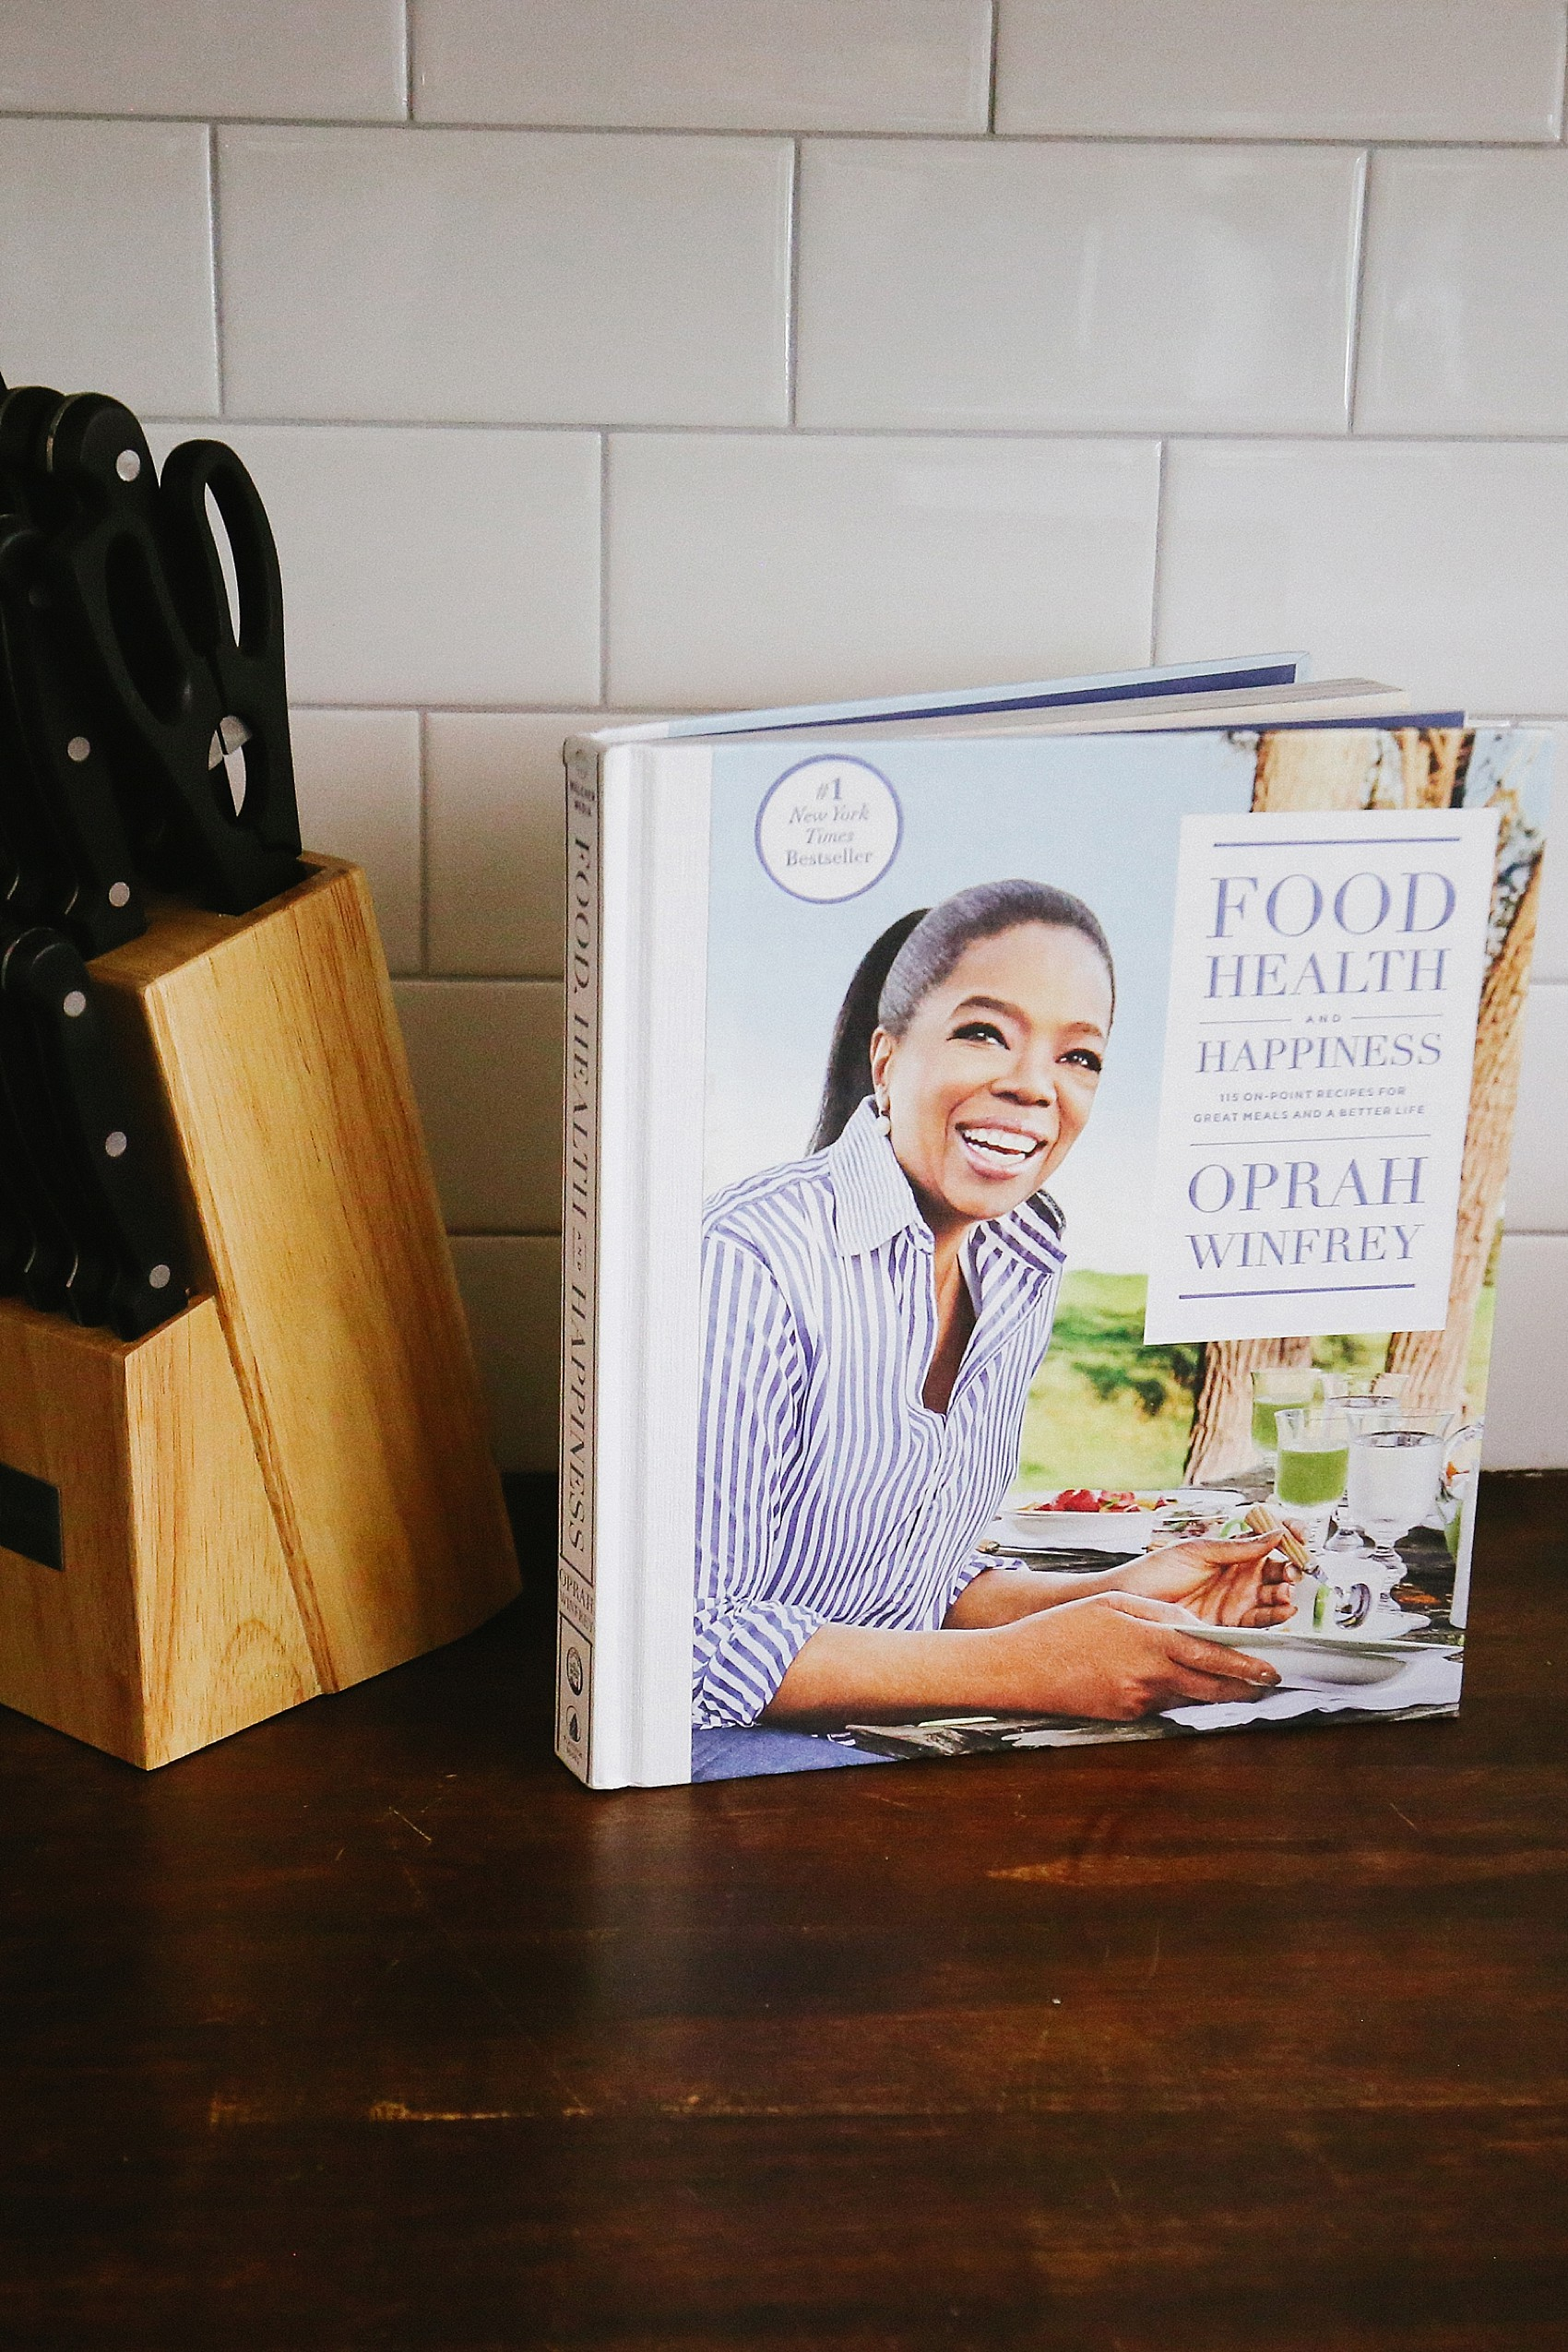 Oprah's new cooking book on kitchen counter top